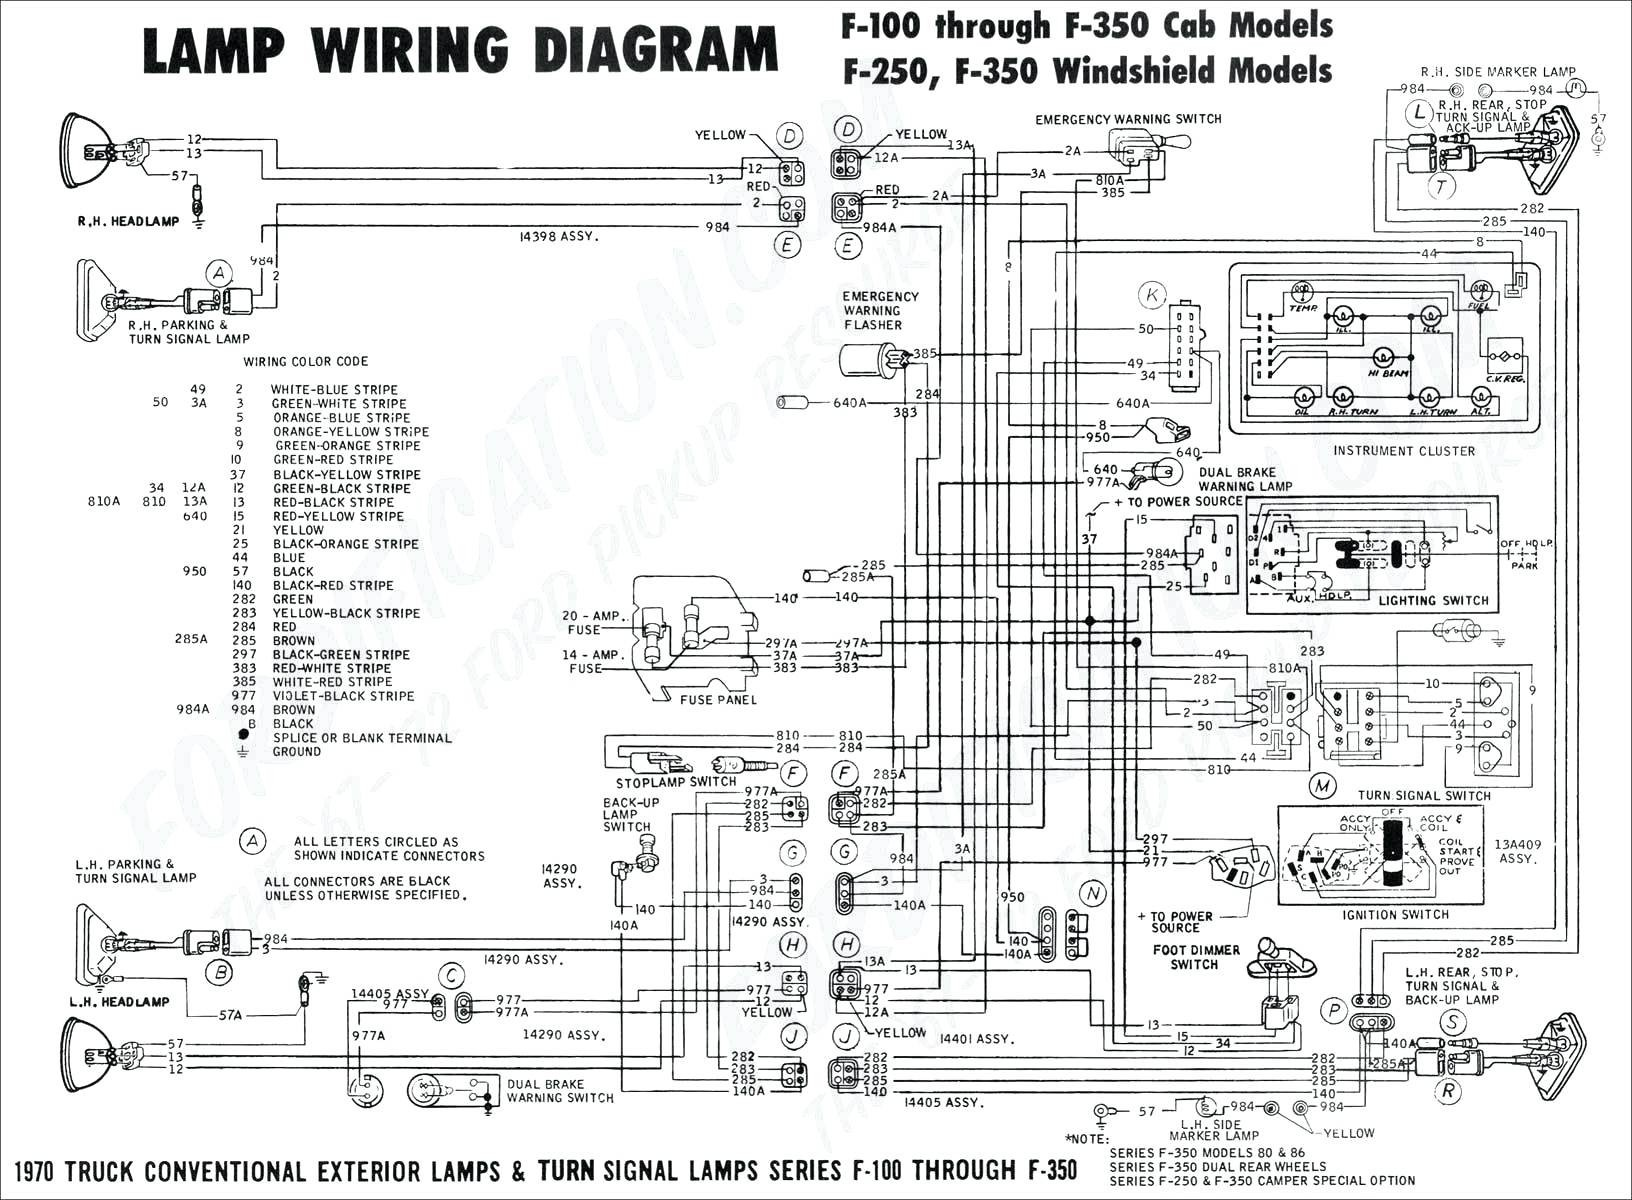 2001 Ford 7 3 Liter Diesel Engine Diagram F250 3l Wiring Powerstroke Turn Signals Trusted